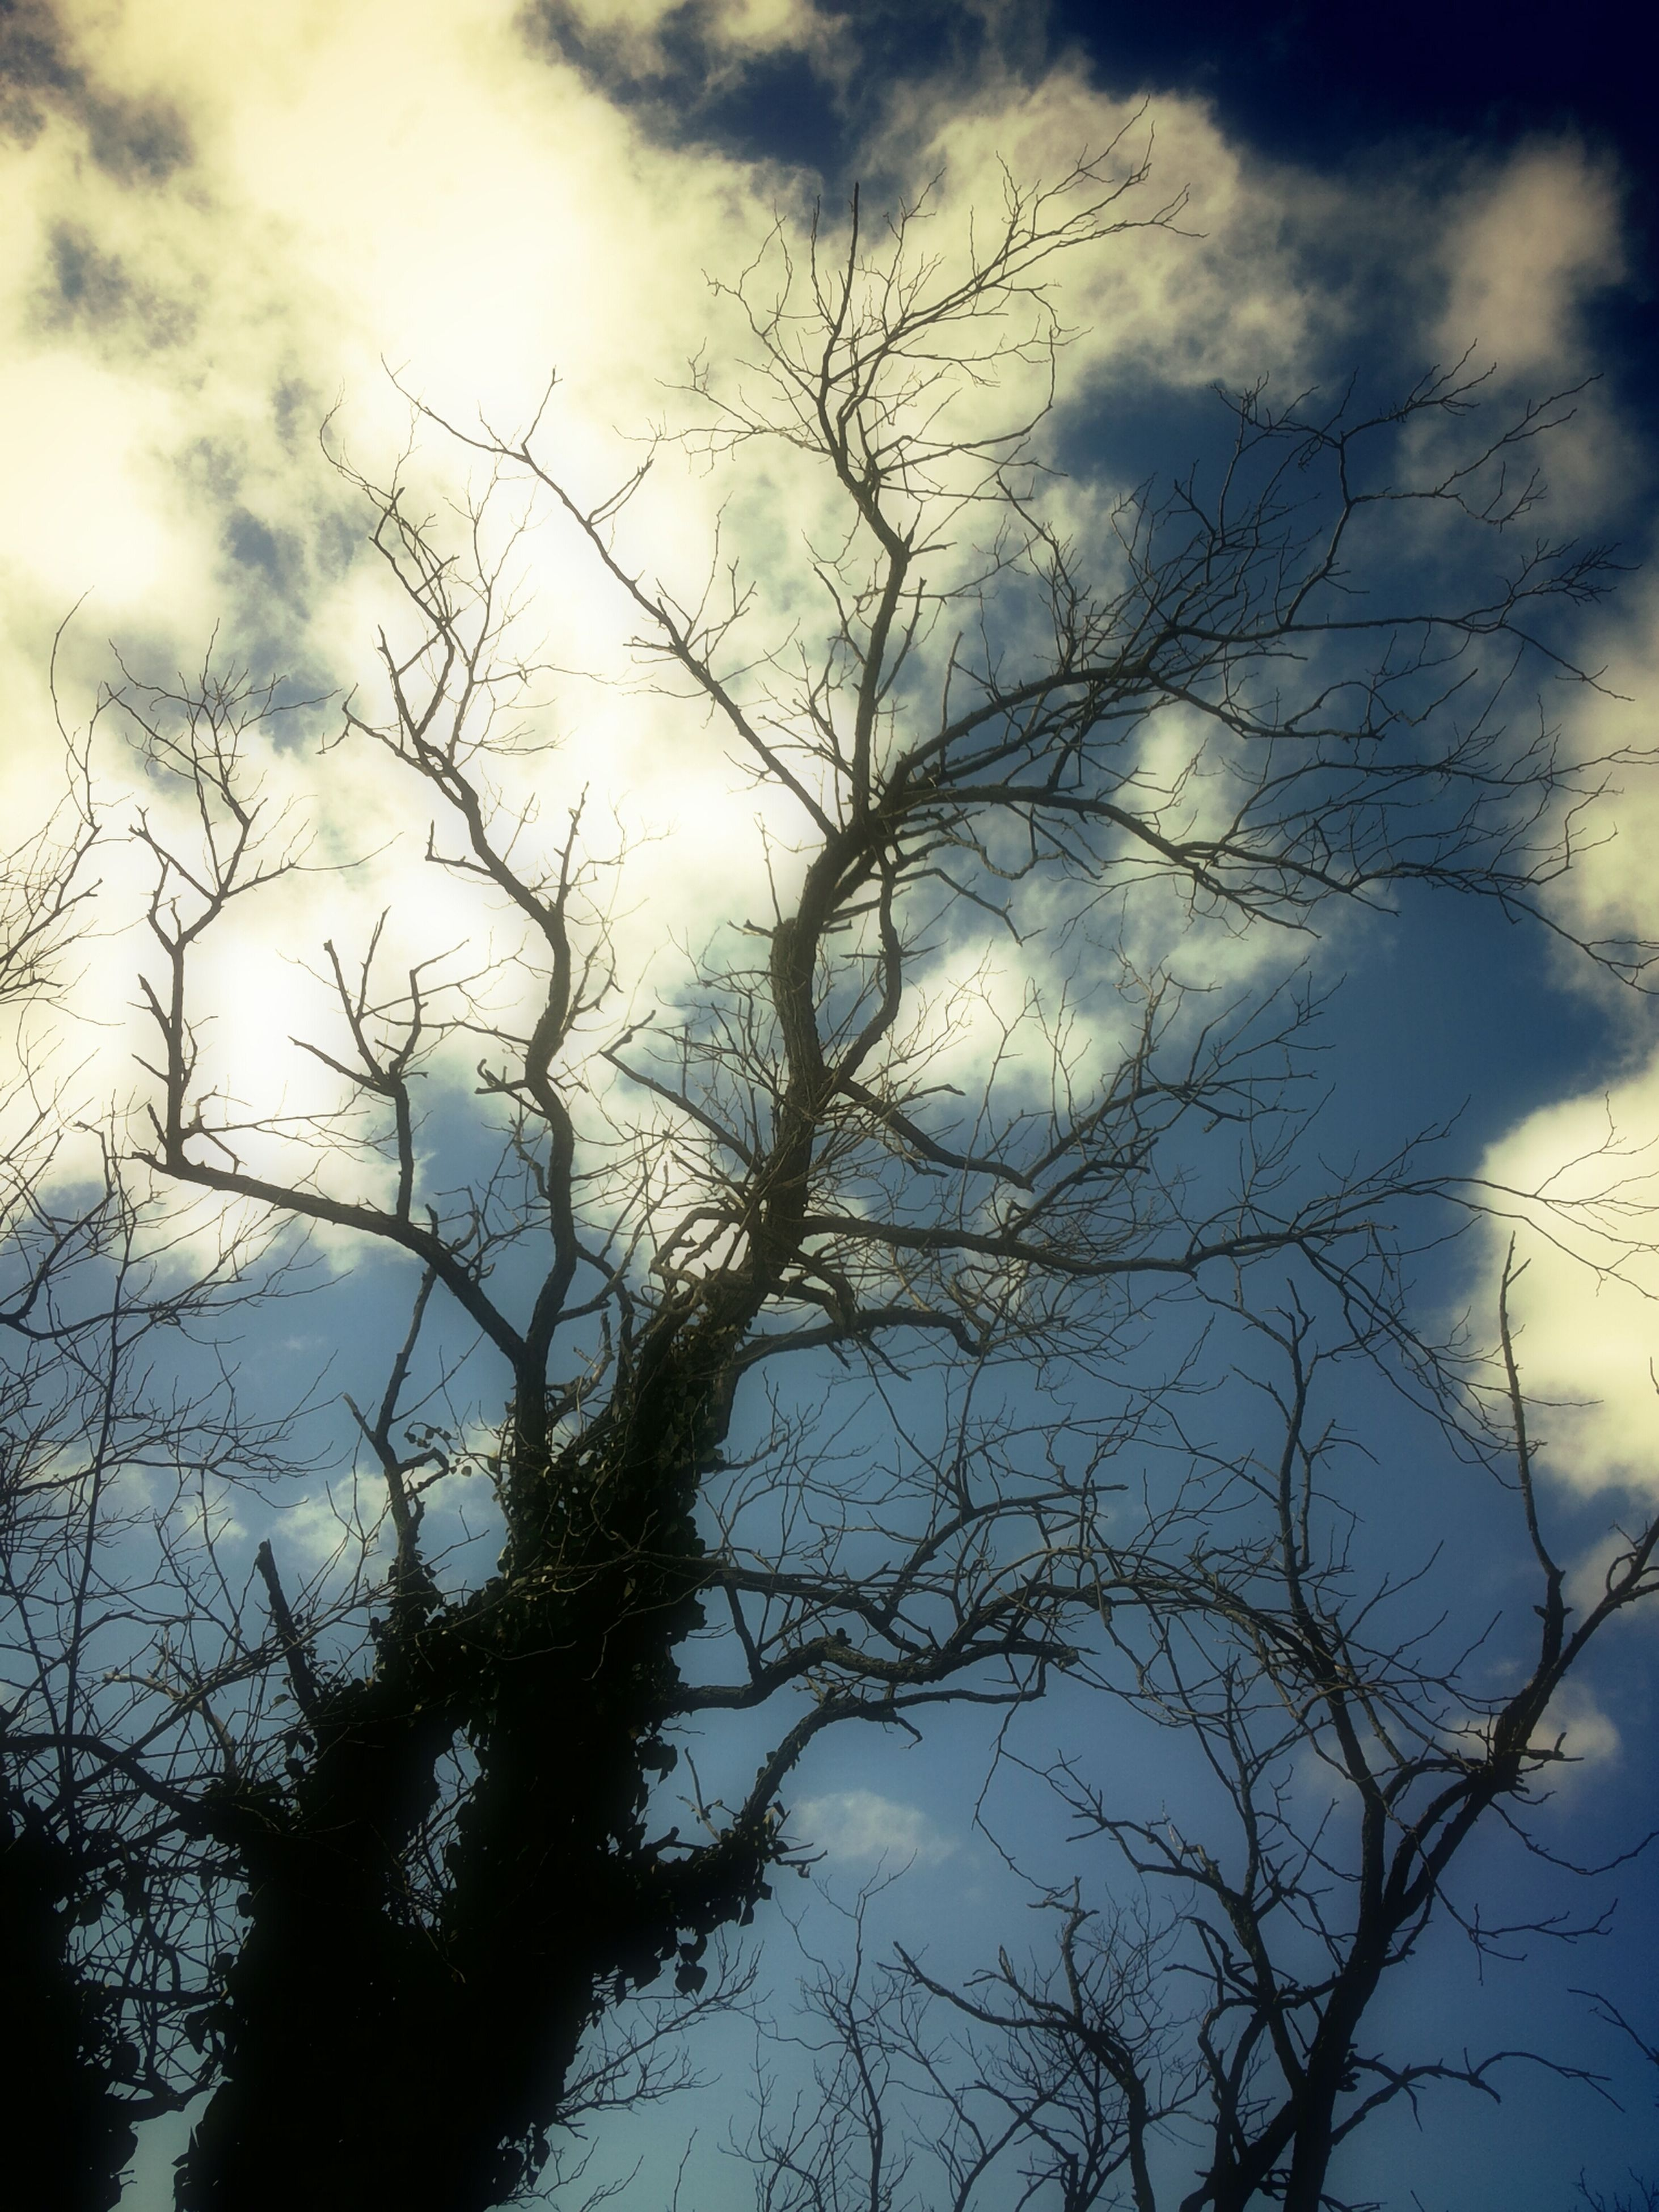 low angle view, sky, branch, tree, bare tree, cloud - sky, cloudy, silhouette, nature, cloud, tranquility, beauty in nature, outdoors, scenics, no people, day, high section, growth, overcast, weather